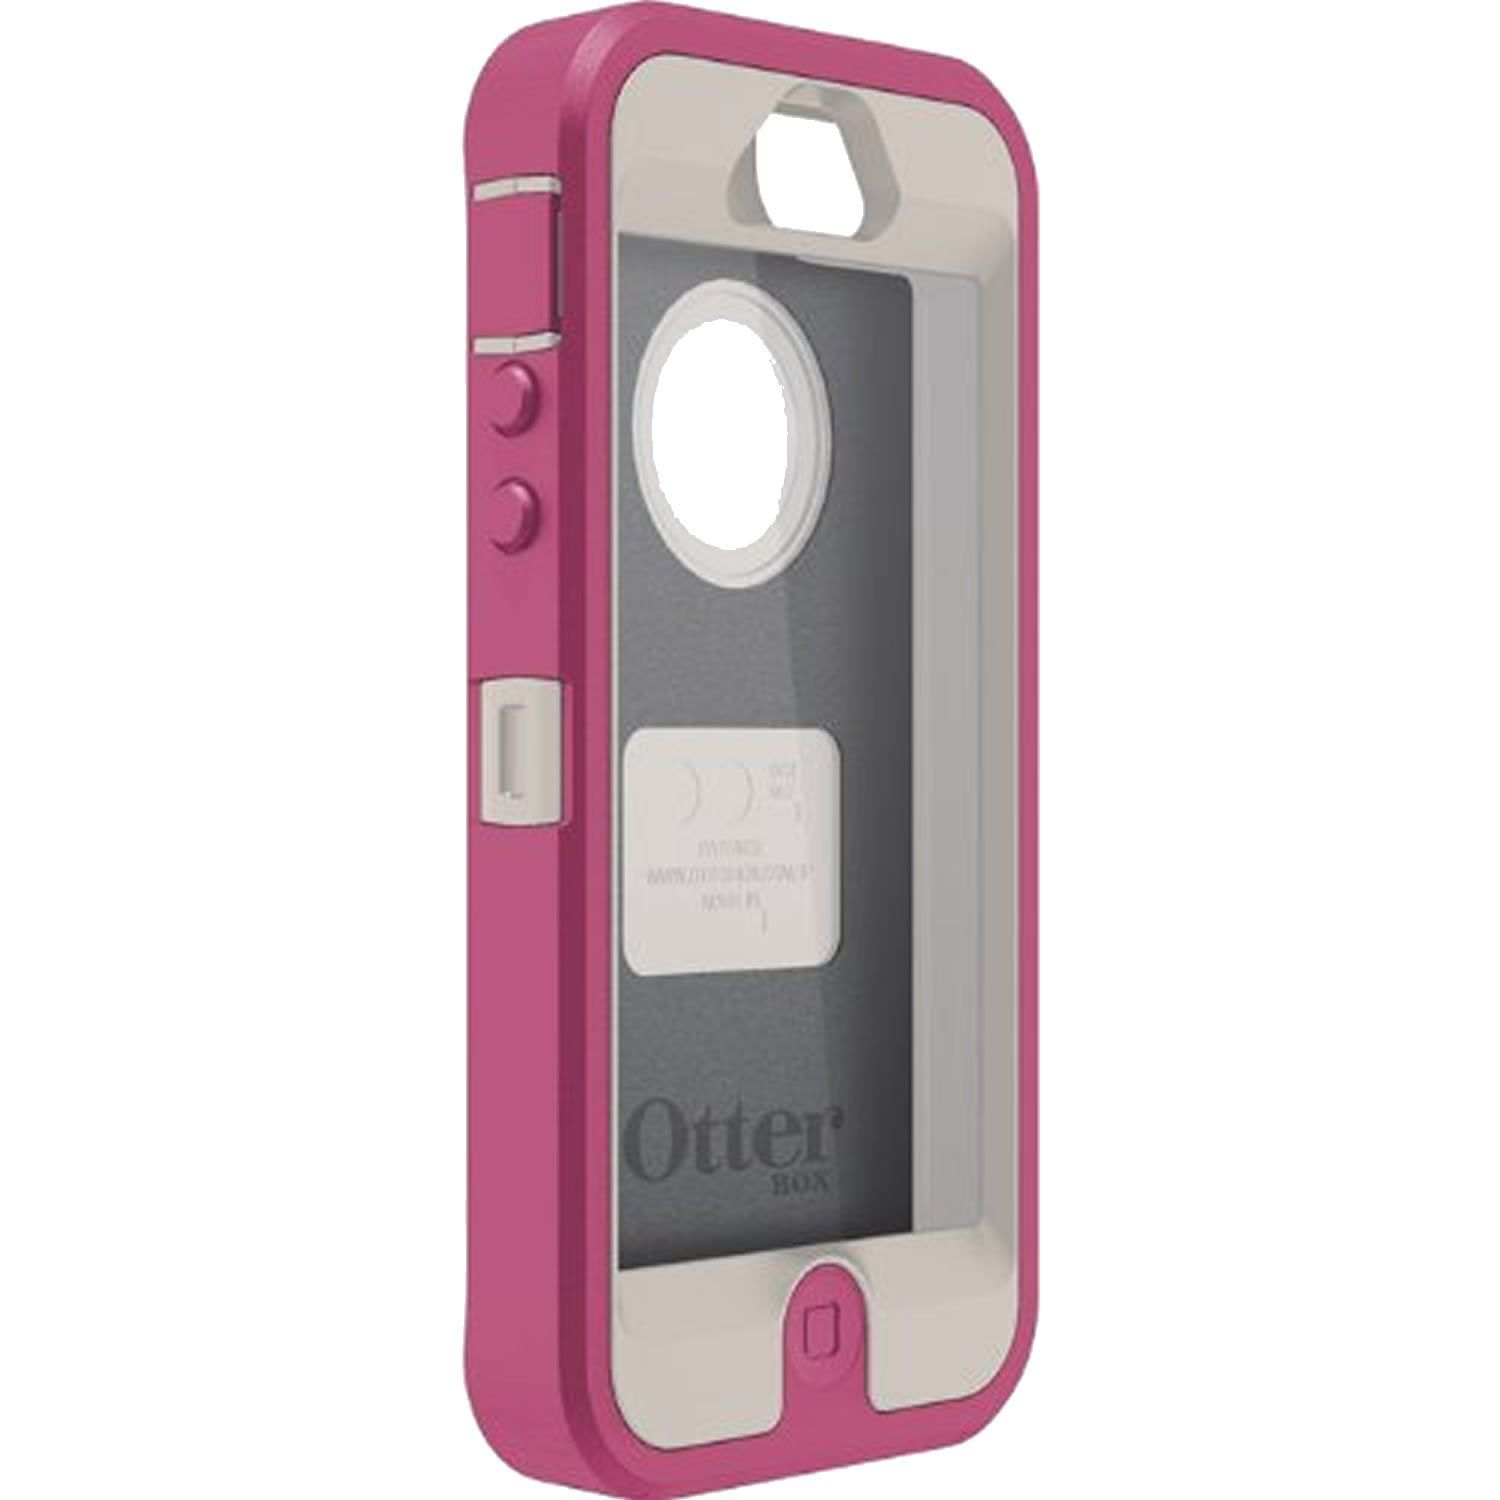 Com Otterbox Defender Series Case For The Original Iphone 5 Not